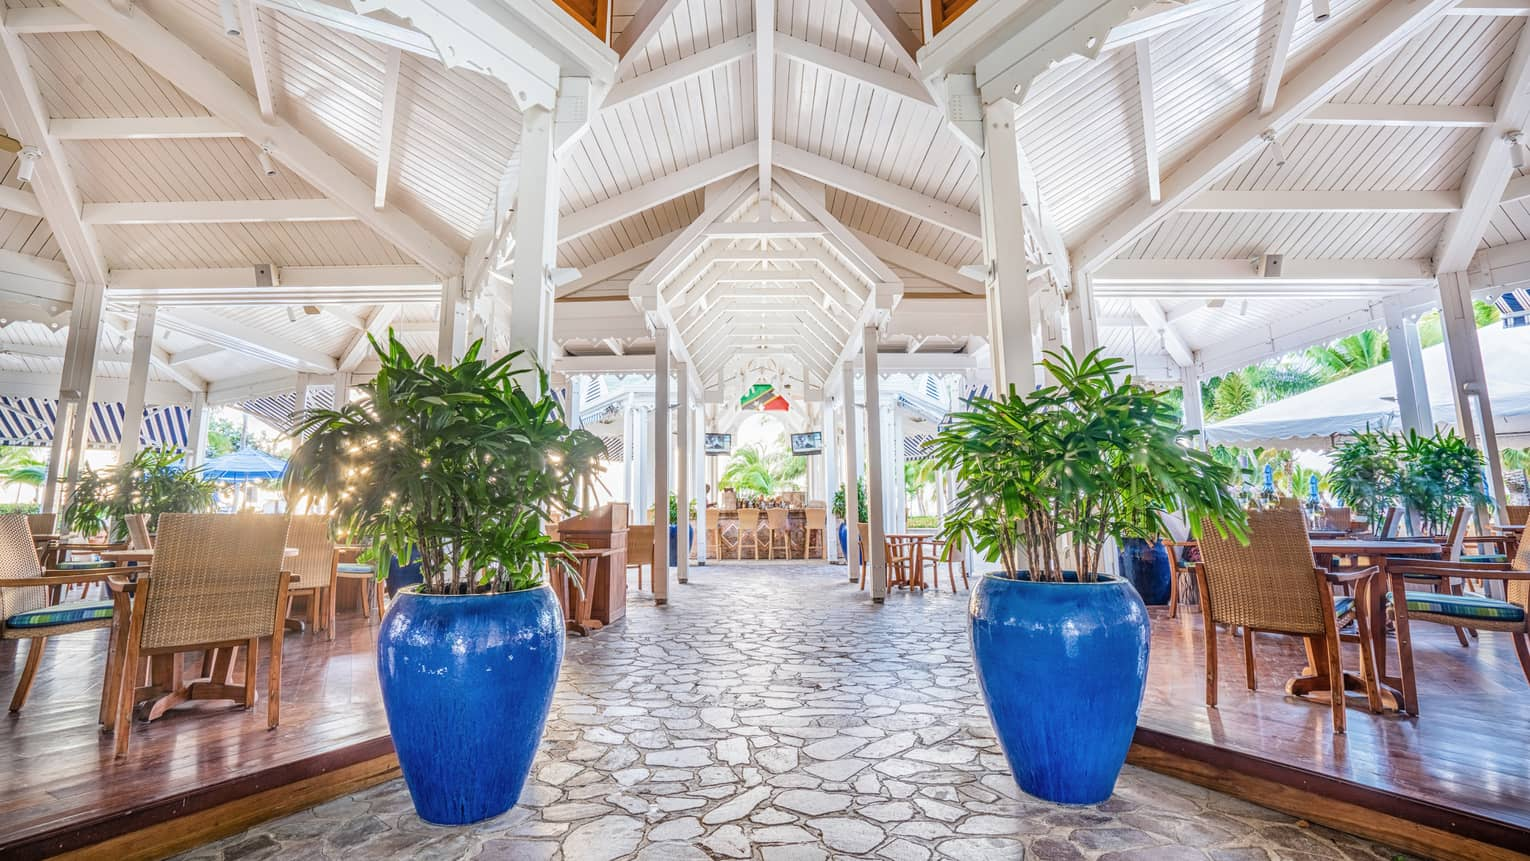 Cabana patio dining room under white cathedral ceilings, large blue pots, plants